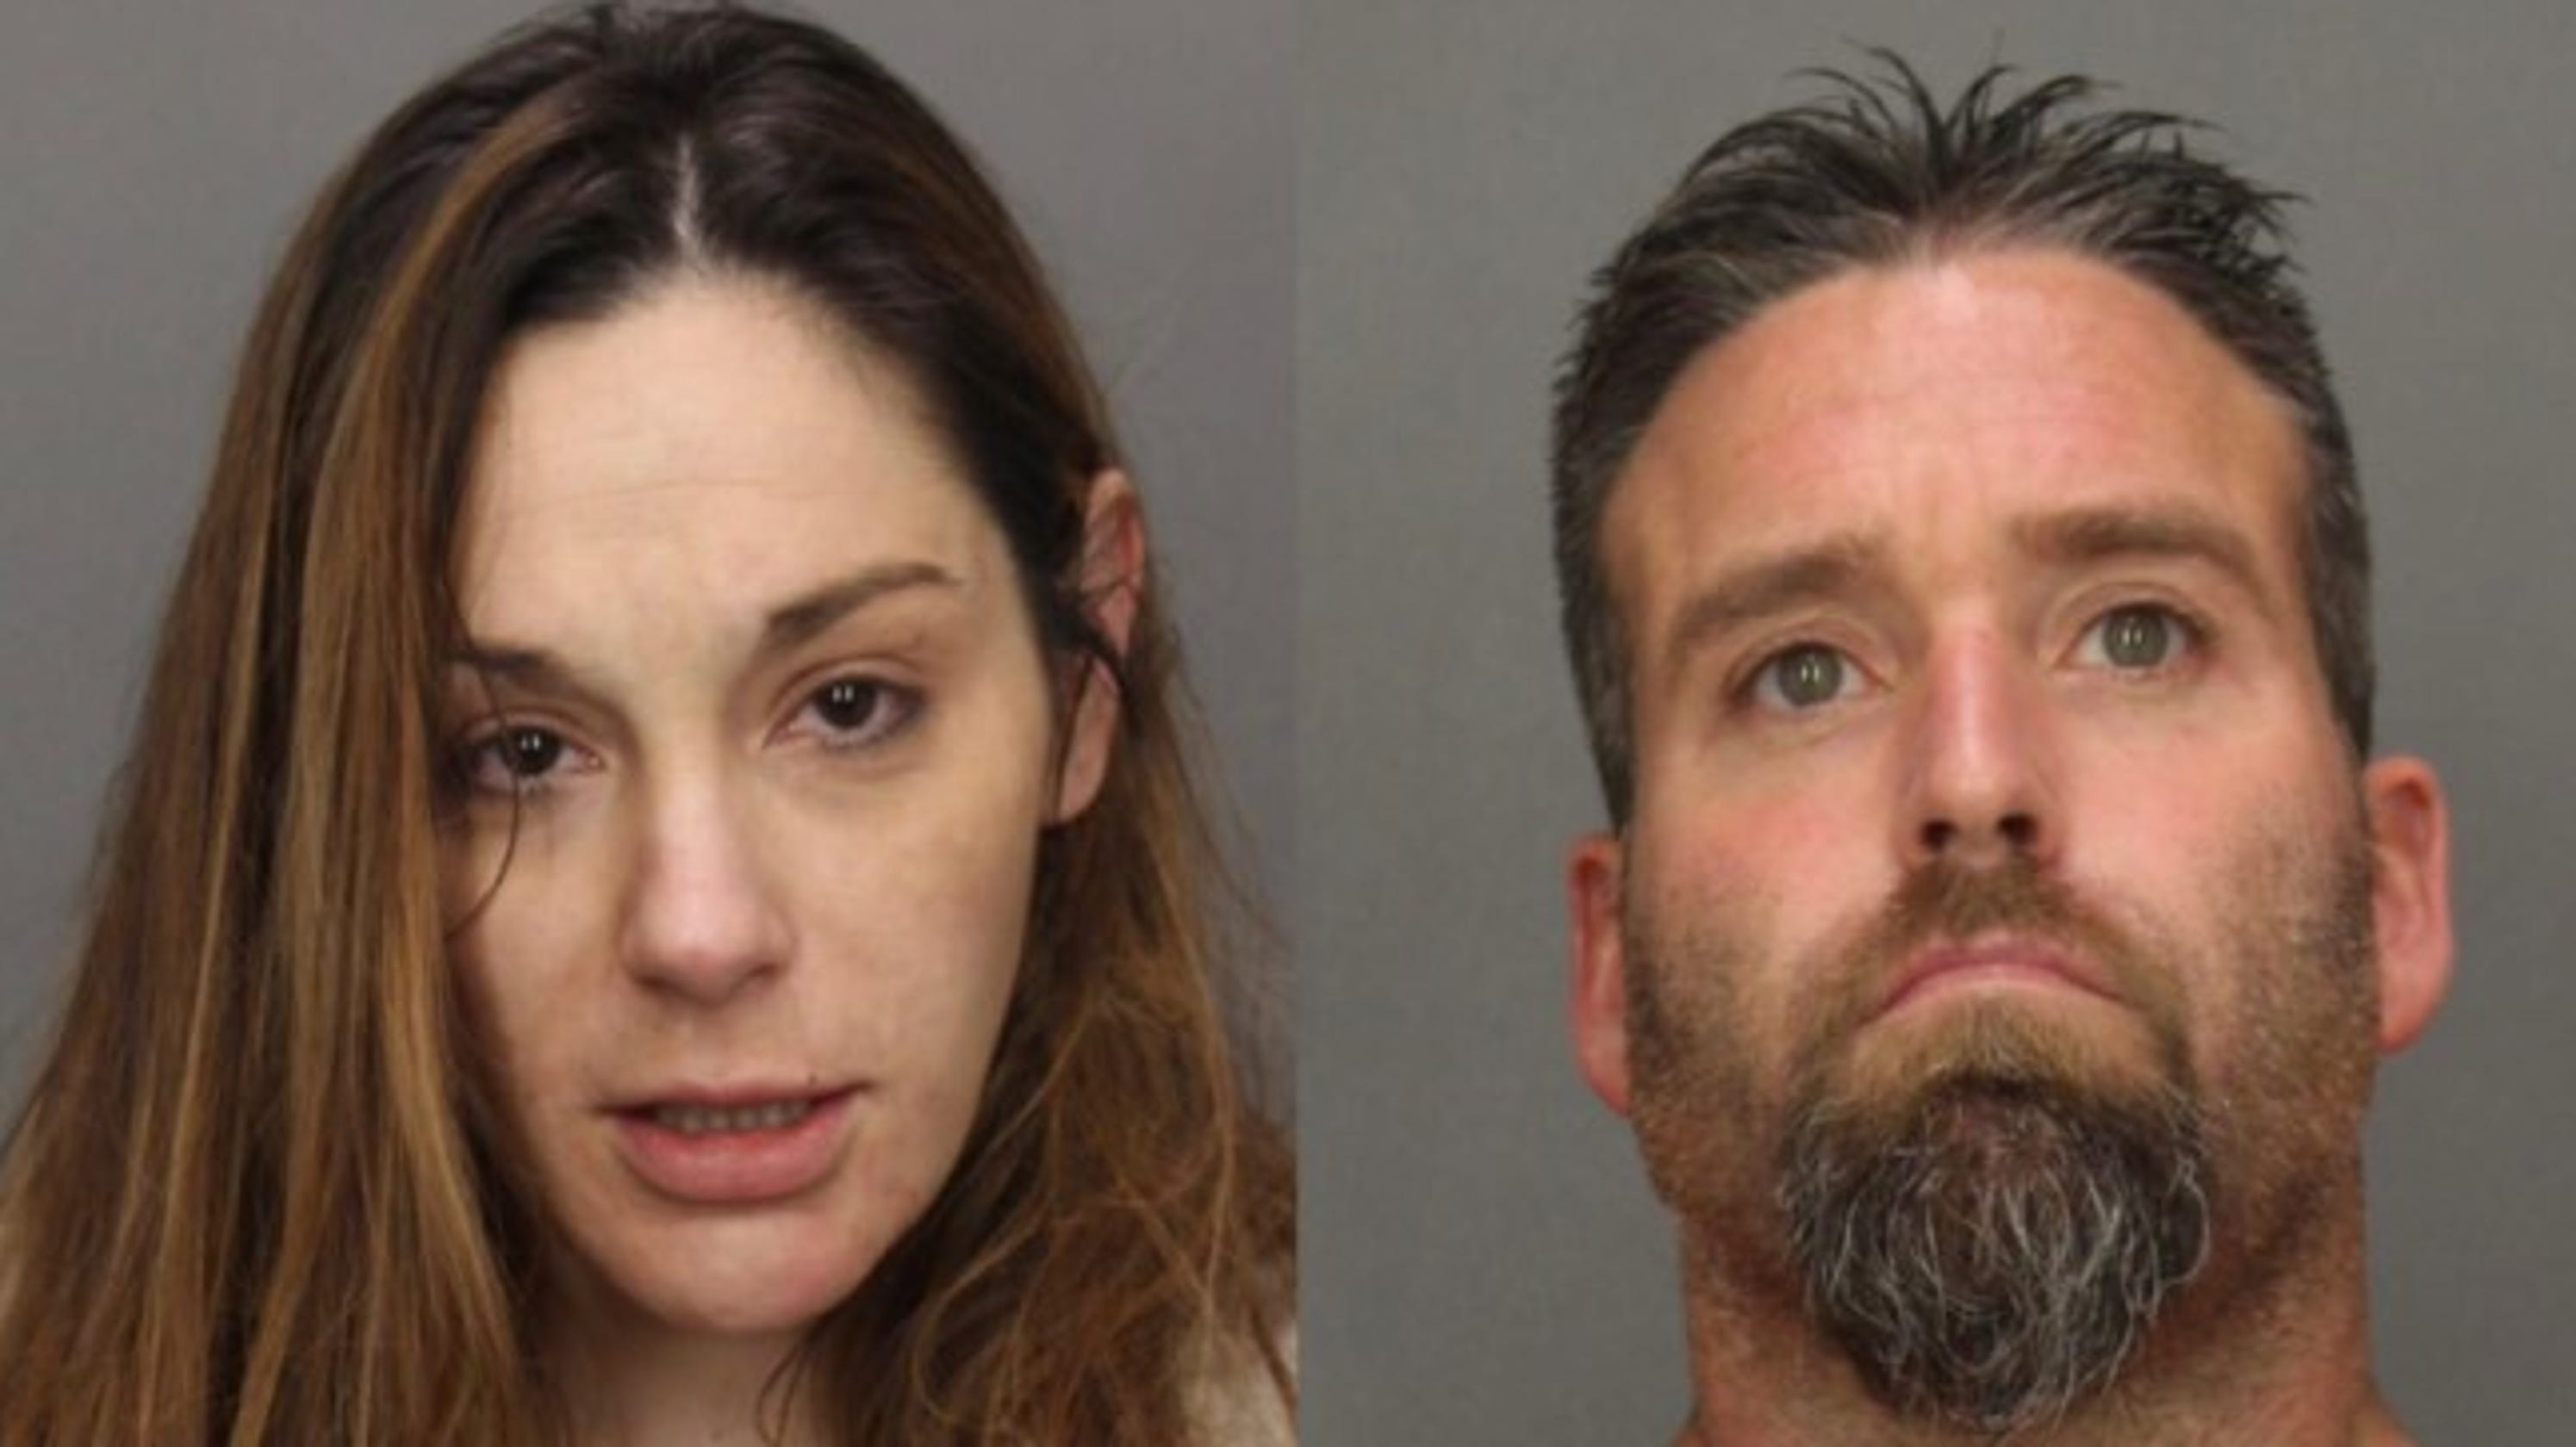 Franklin police arrest 4, recover meth and heroin in drug raid